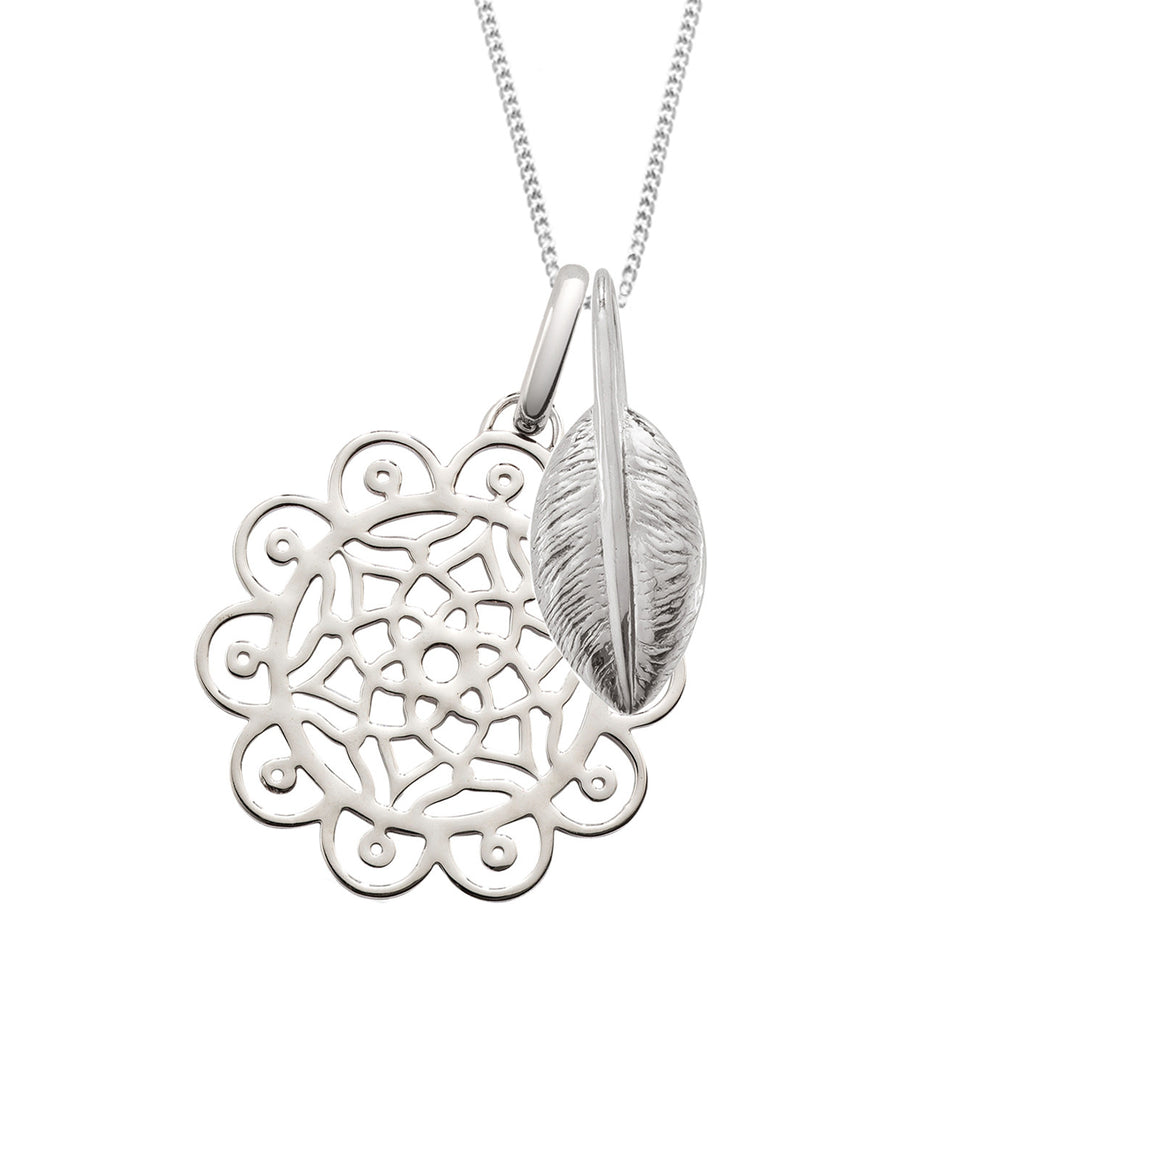 Designer jewellery necklace talisman by OAK